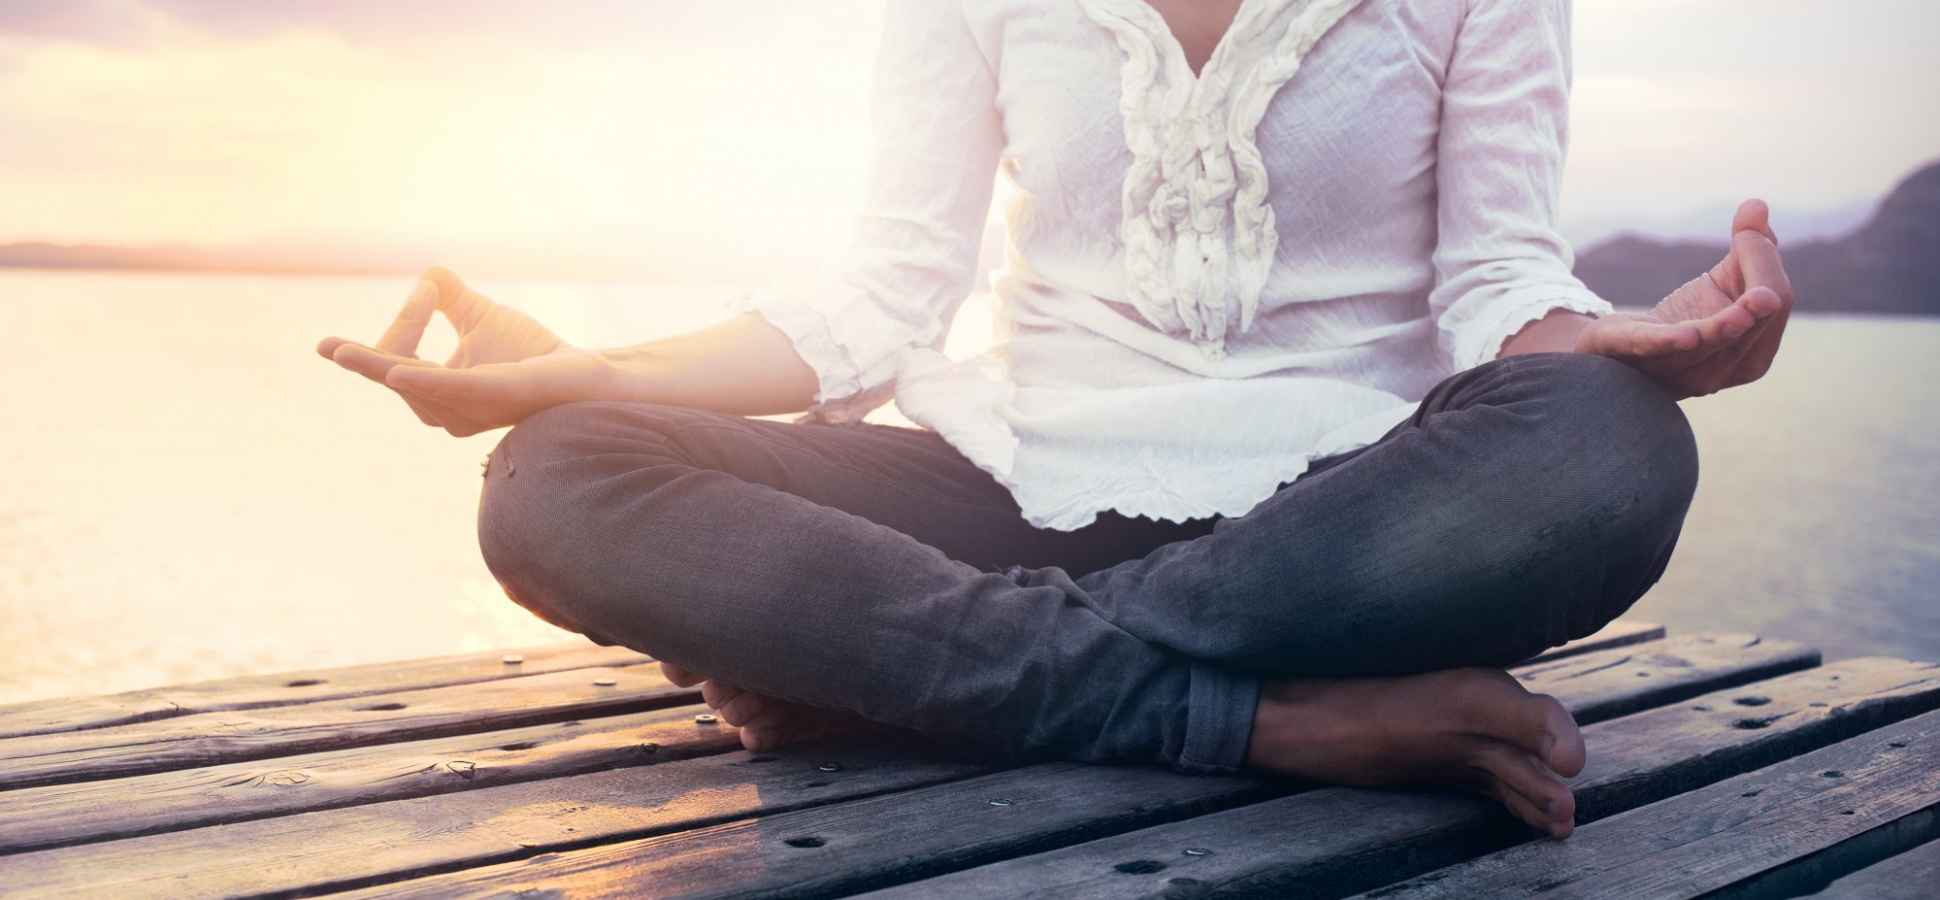 5 Simple Steps for Mastering Mindfulness